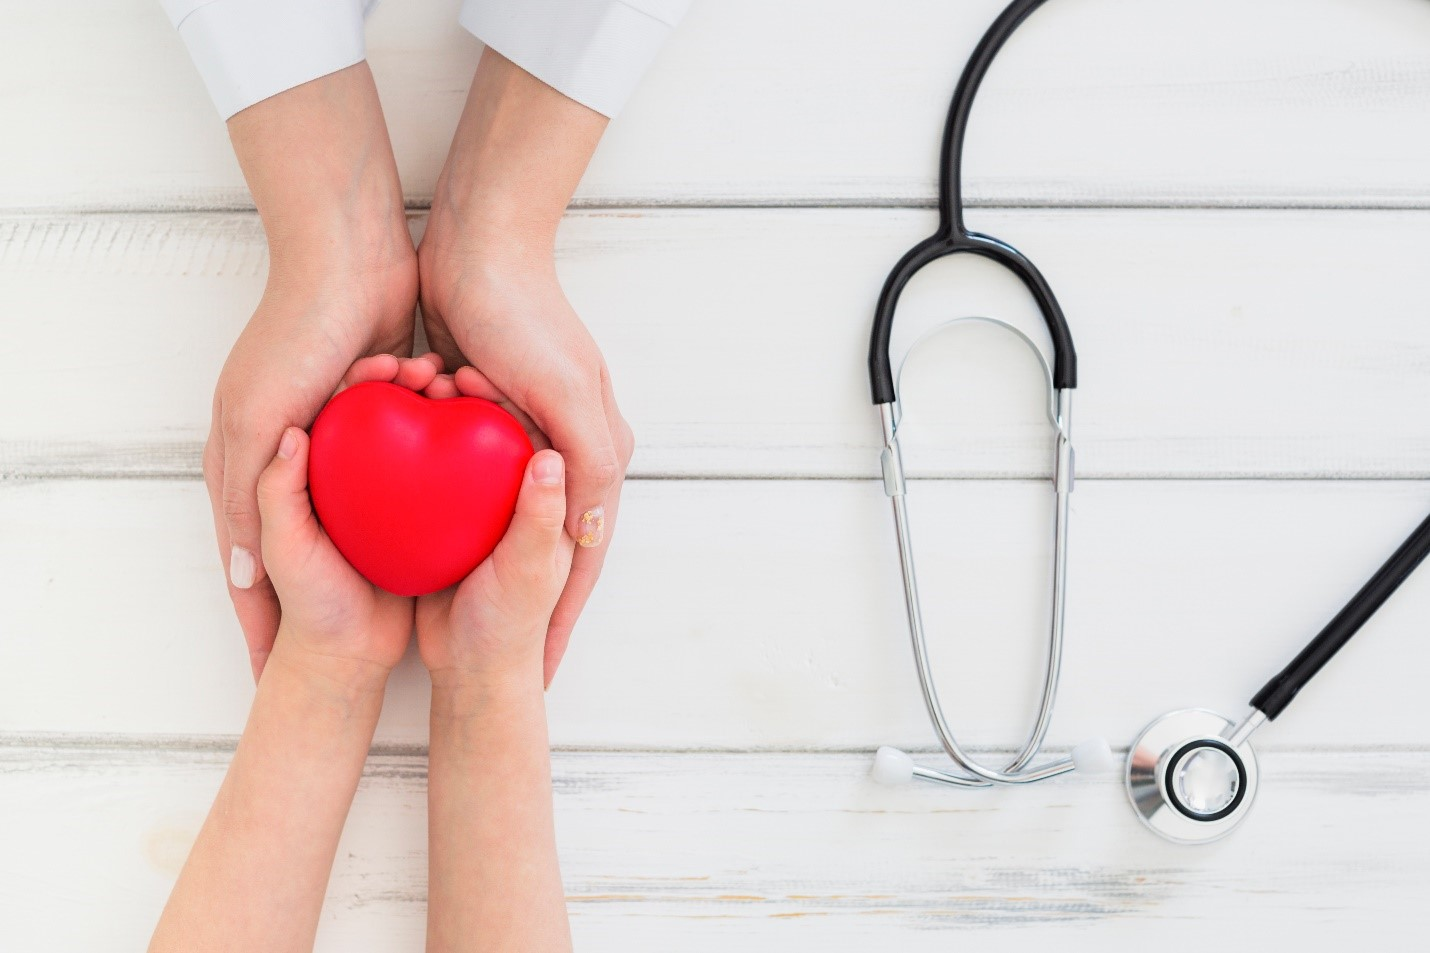 How Can We Prevent Heart Diseases?